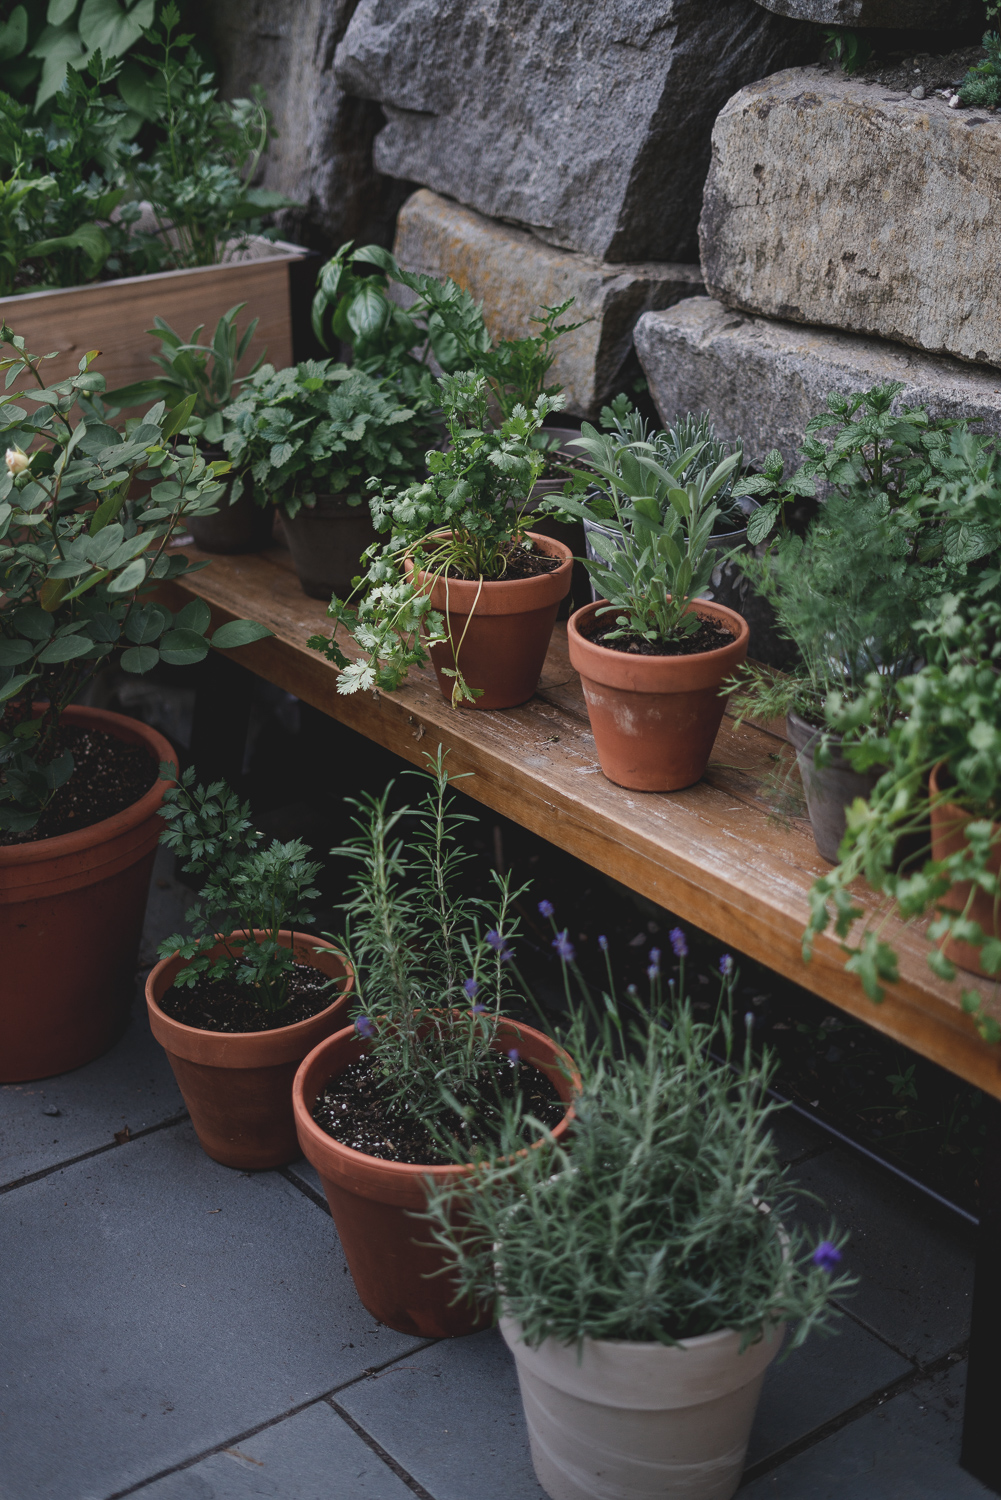 The BEST Beginners Guide To Container Gardening (Everything You Need To Get Started)